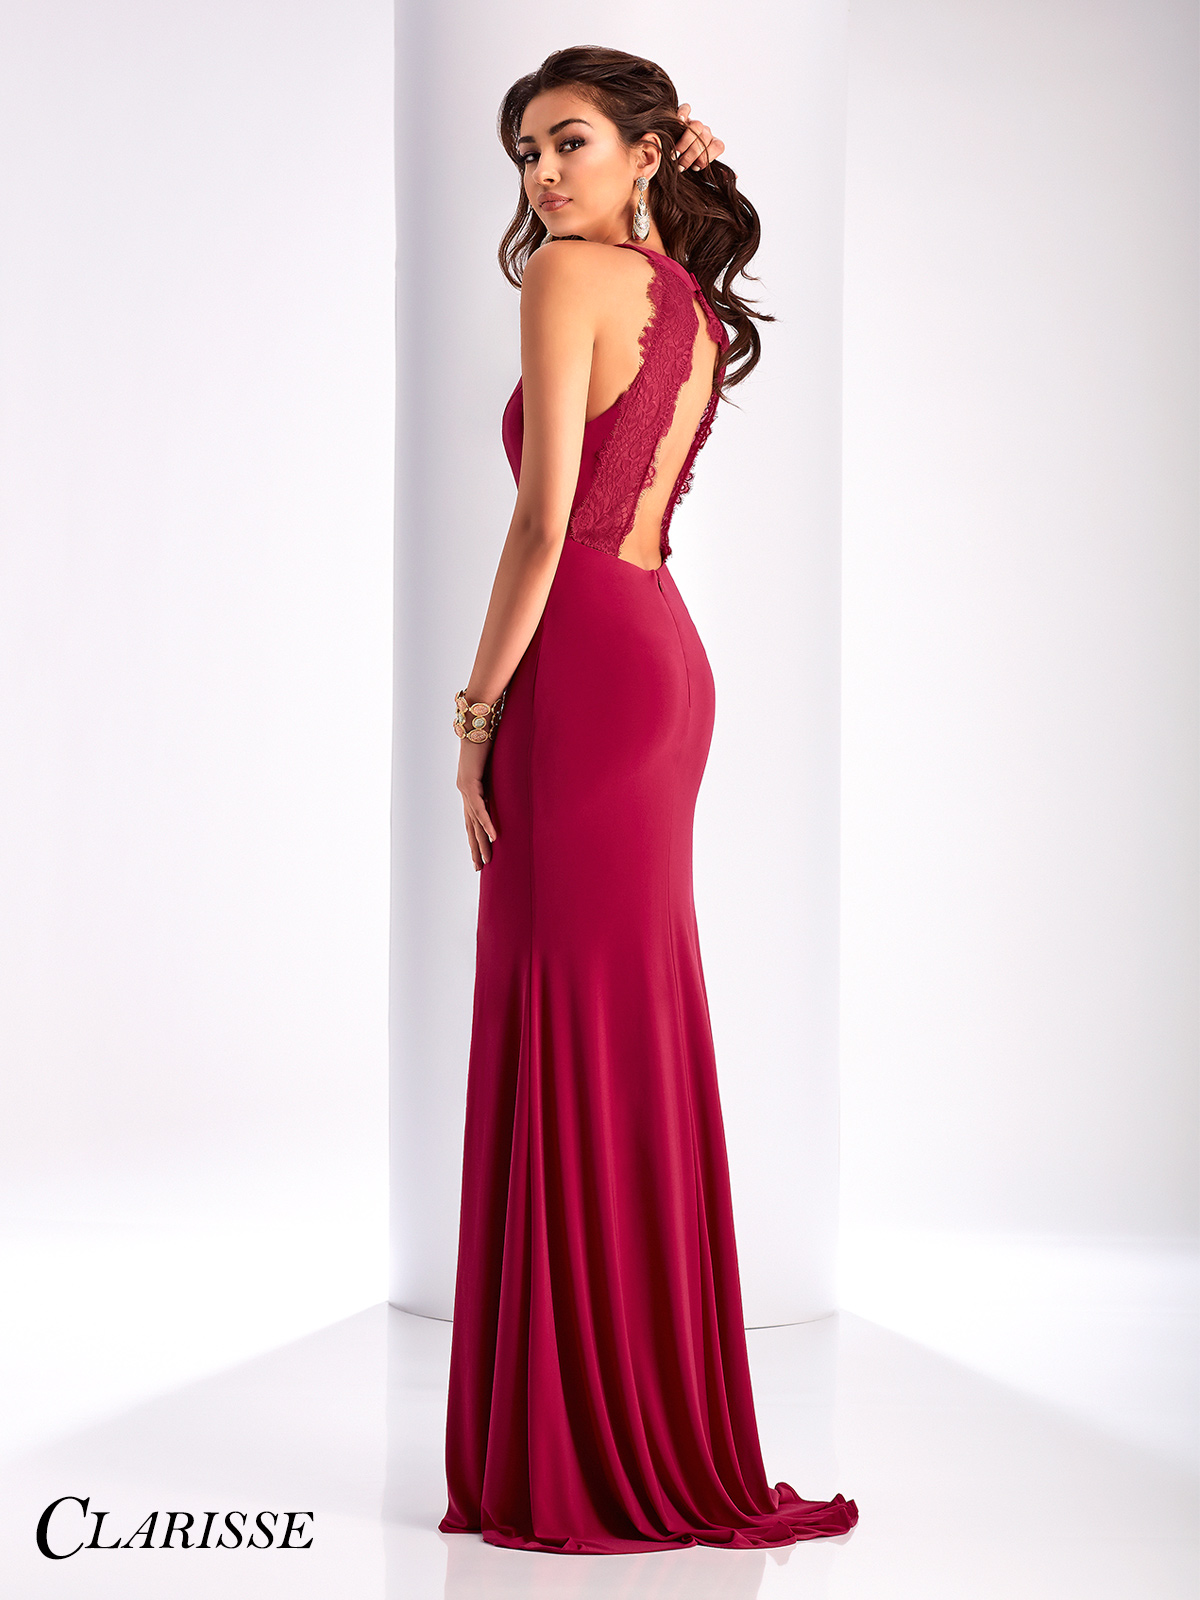 Clarisse Prom Dress 3048 Promgirl Net